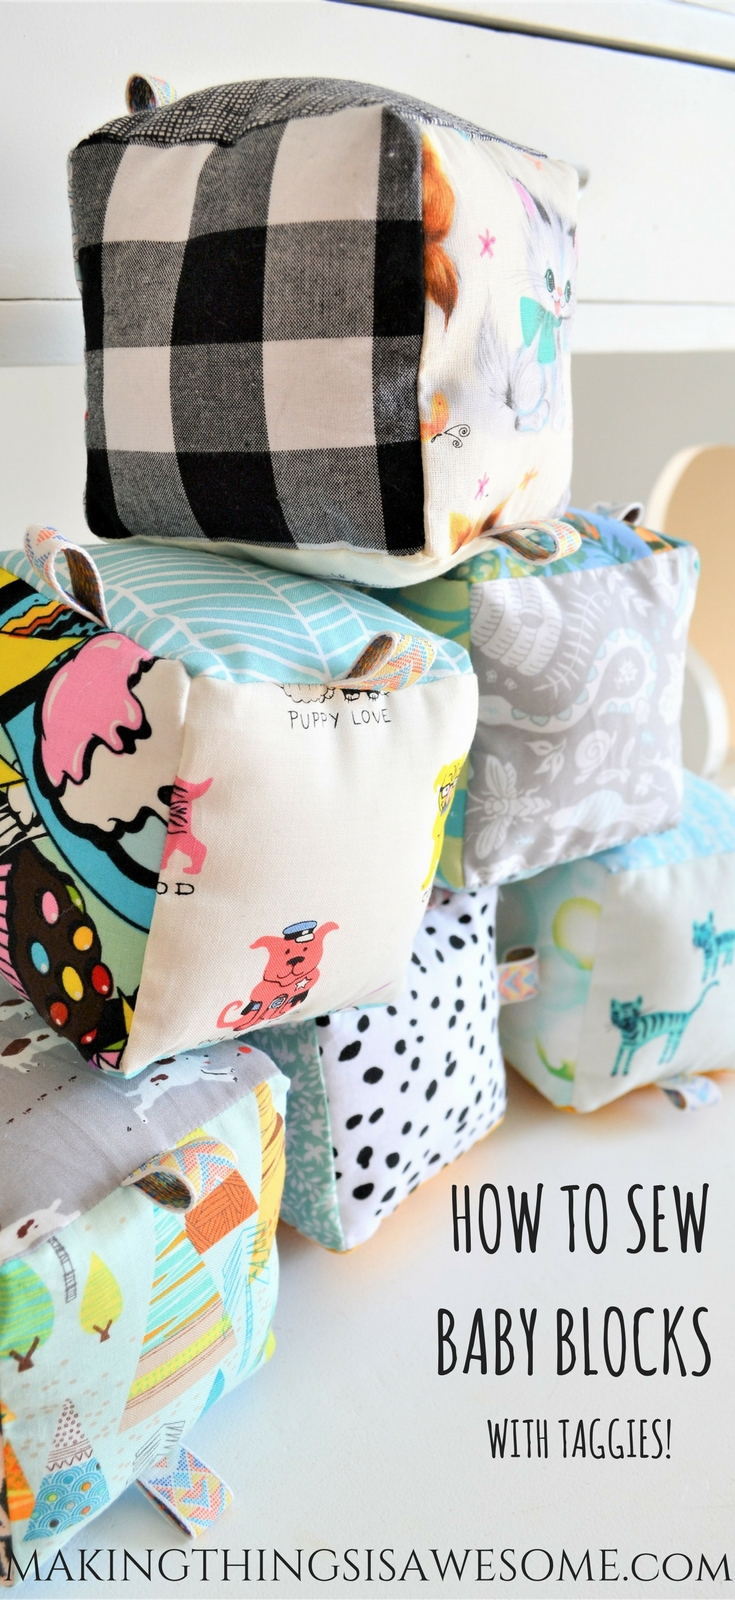 How to Sew Baby Blocks With Taggies